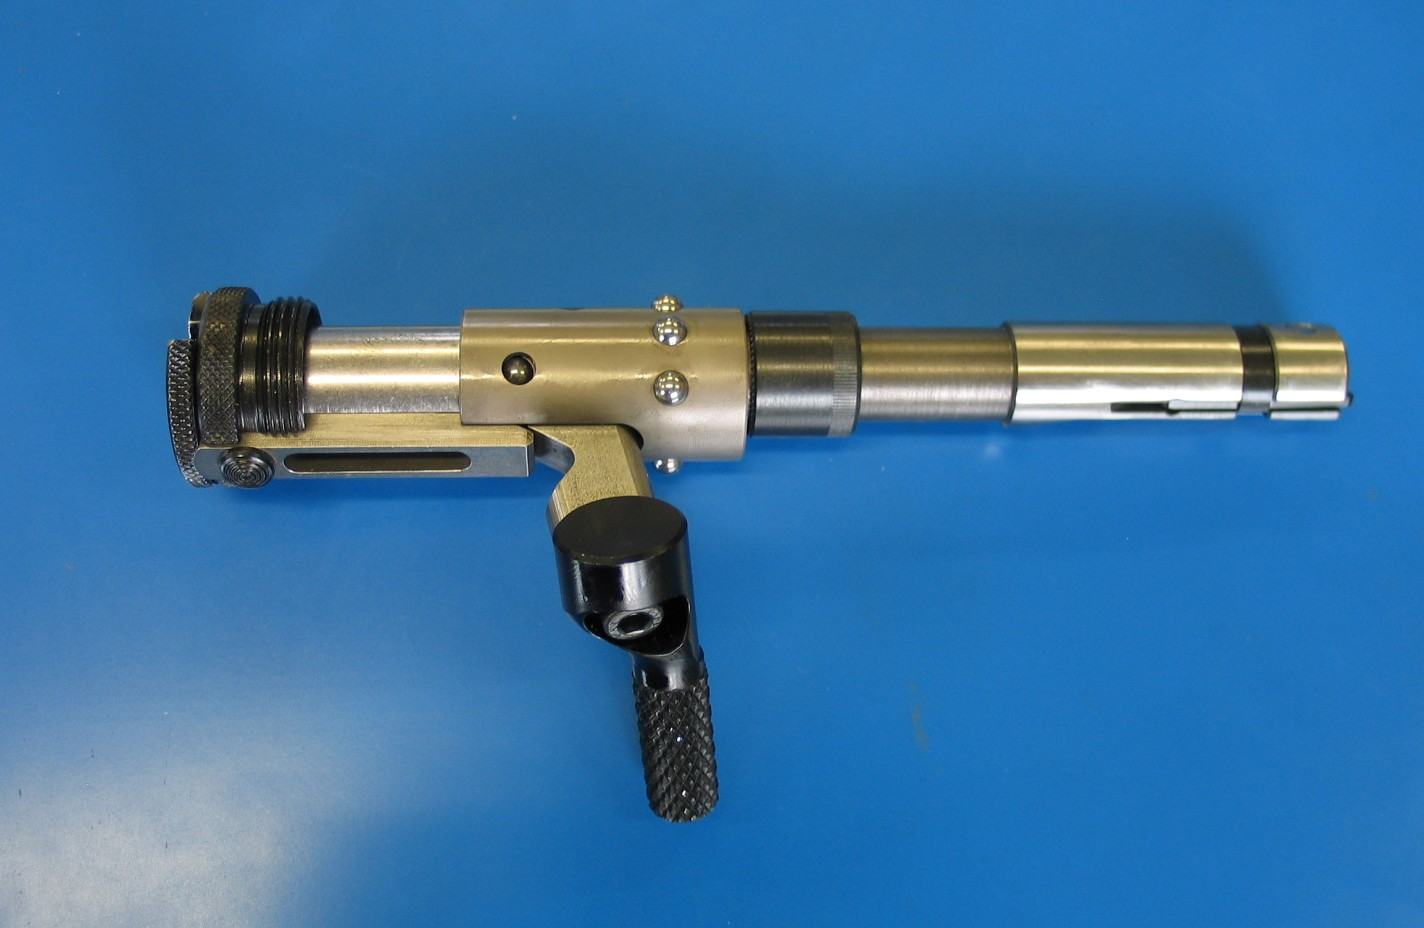 A biathlon rifle repeating device.